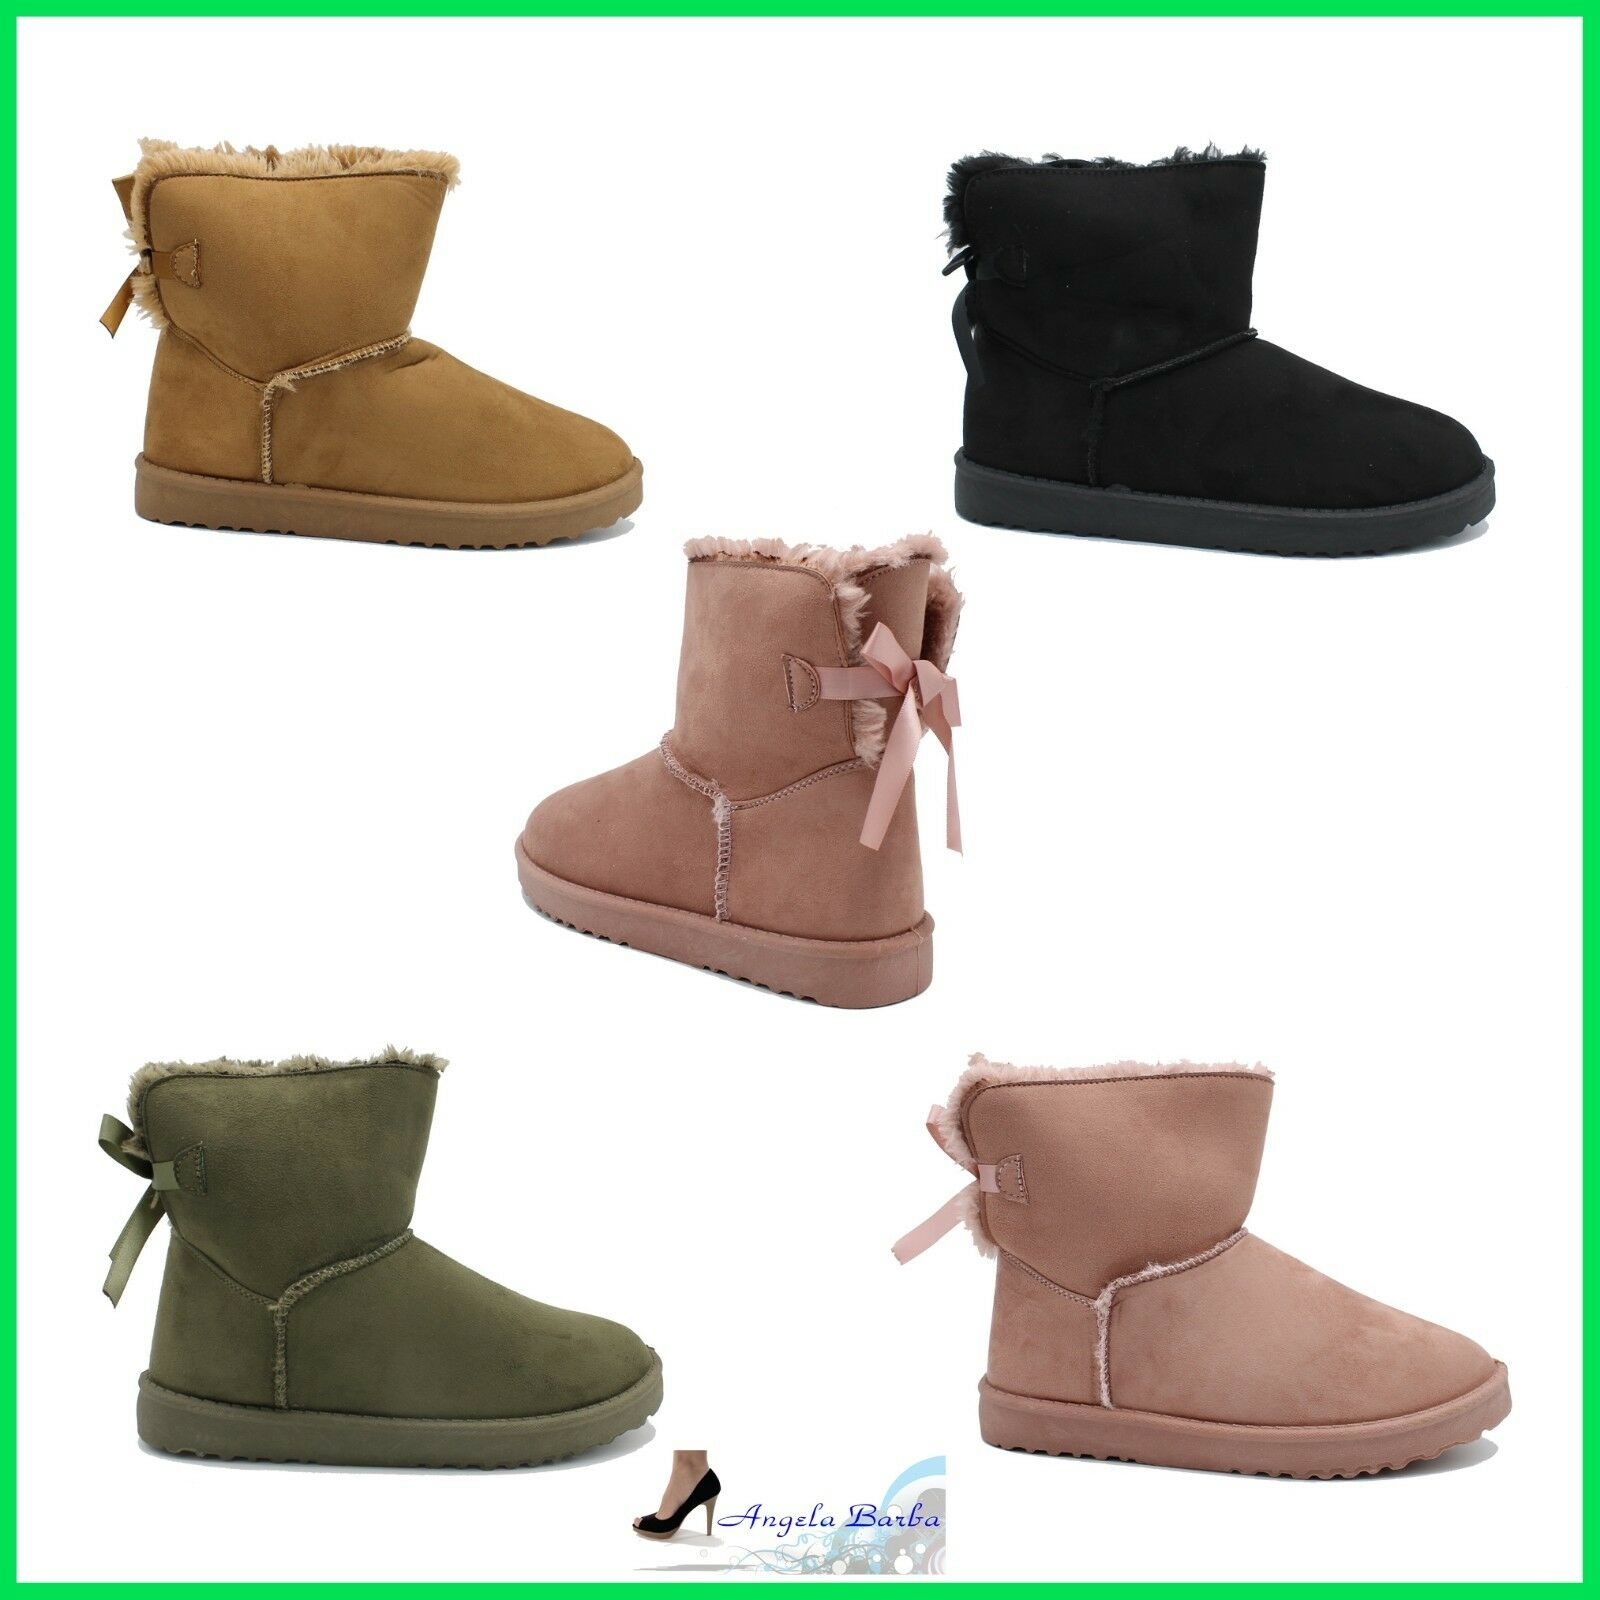 Boots women's Booties Winter with Fur Ankle Boot Hair boot Snow